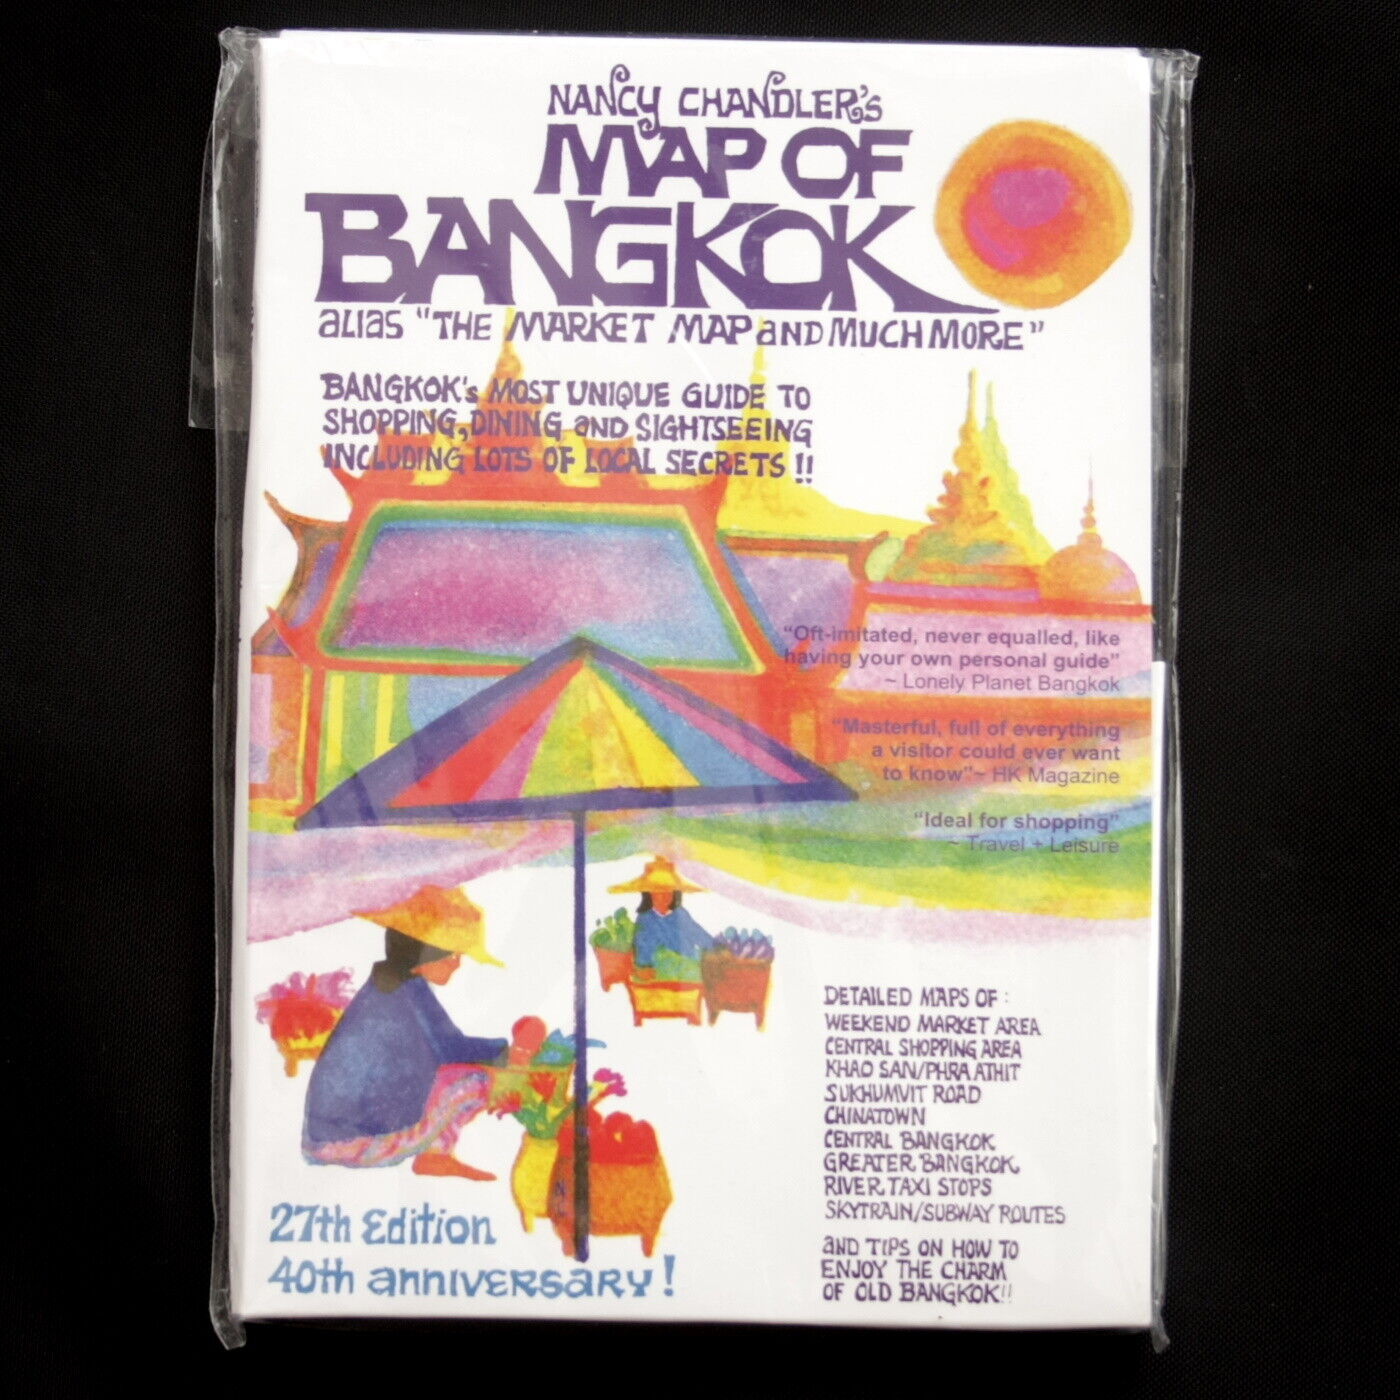 Nancy Chandlers Map Of Bangkok 40th Anniversary 27th Edition NEW In Package - $25.59